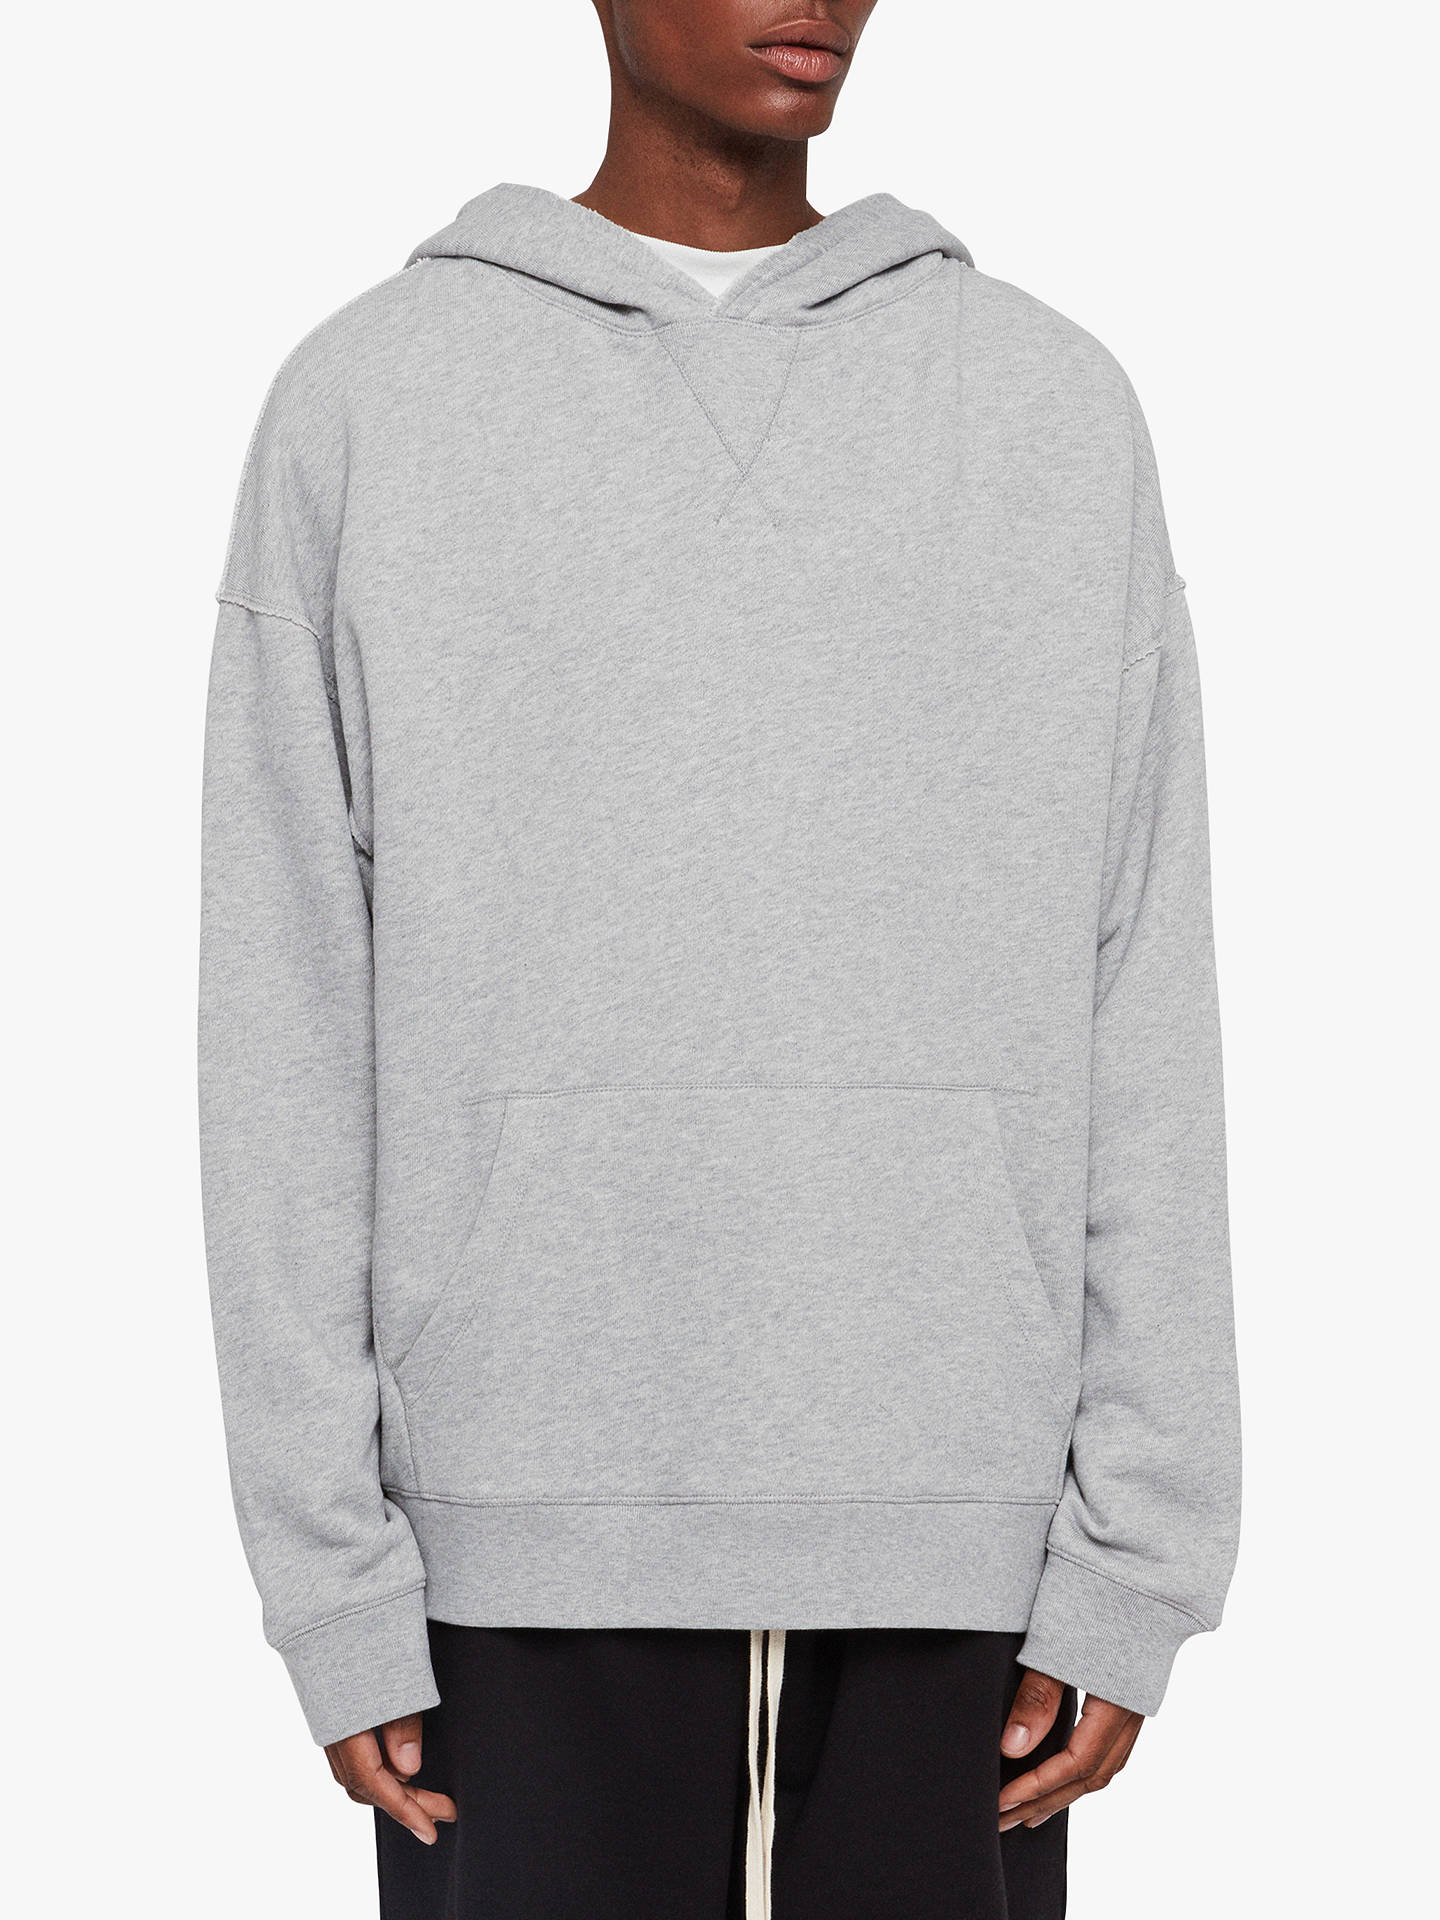 outlet store b489c 04c87 AllSaints Kyle Pullover Hoodie, Grey at John Lewis & Partners